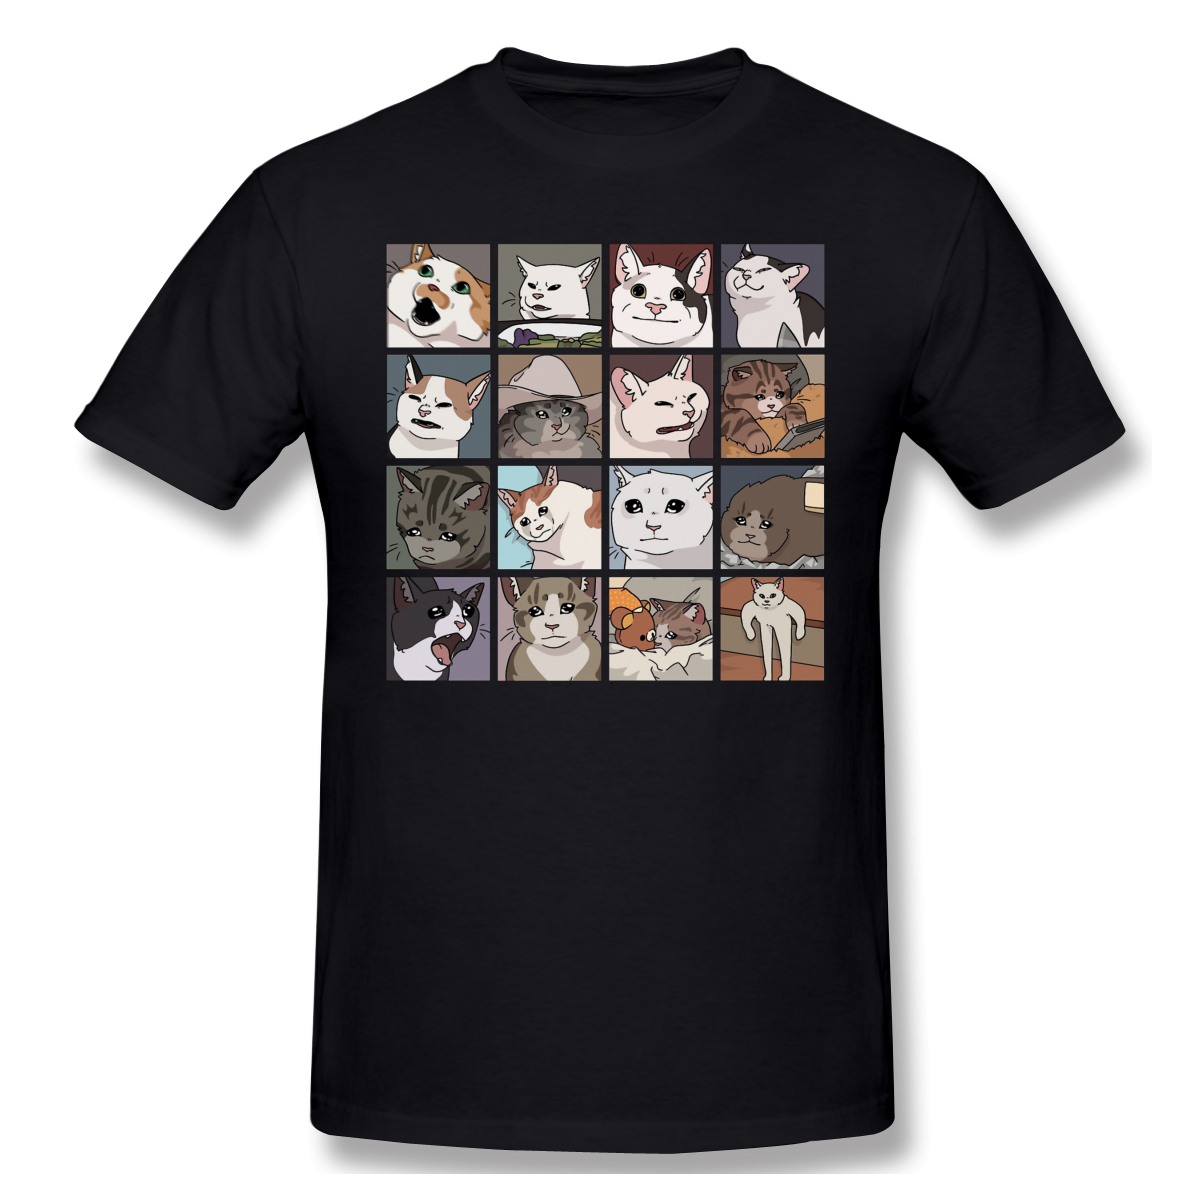 Meme Cats 2.0 T-Shirt Men Birthday Gifts Short Sleeves Funny Tees O Neck 100% Cotton Clothes Humor T Shirt